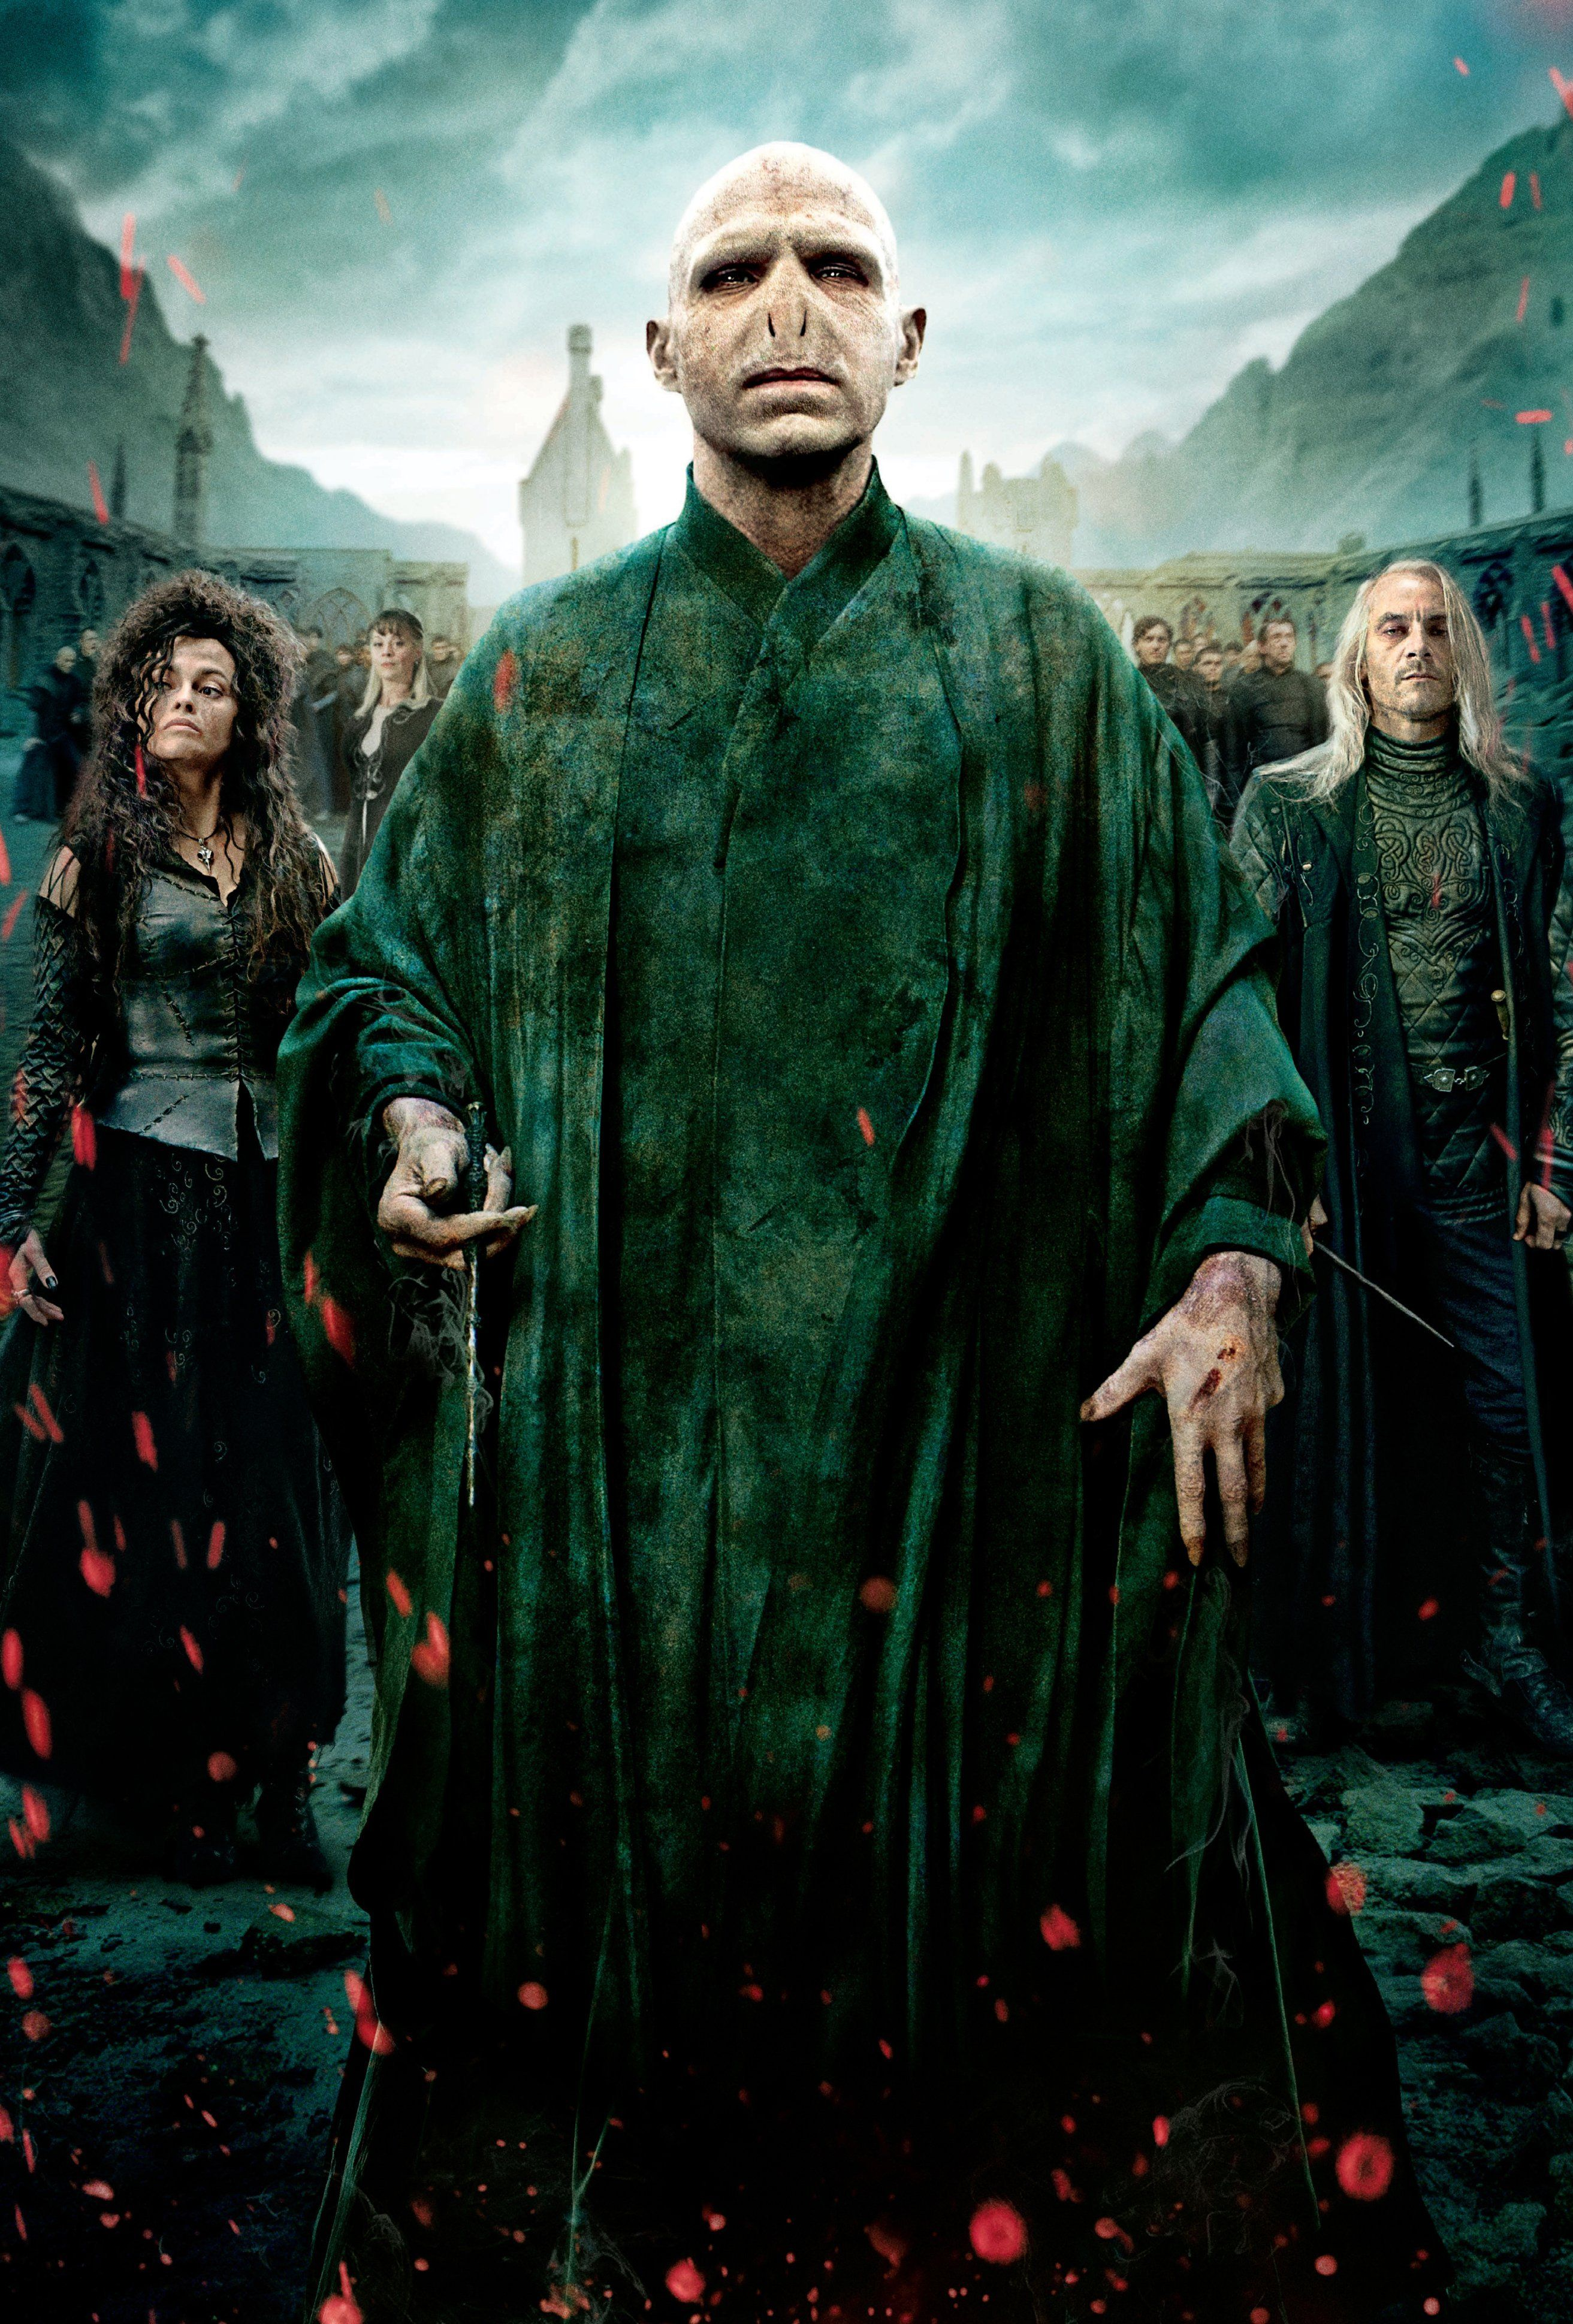 Harry Potter 7 Part 2 Harry Potter Poster Harry Potter Characters Harry Potter Movies